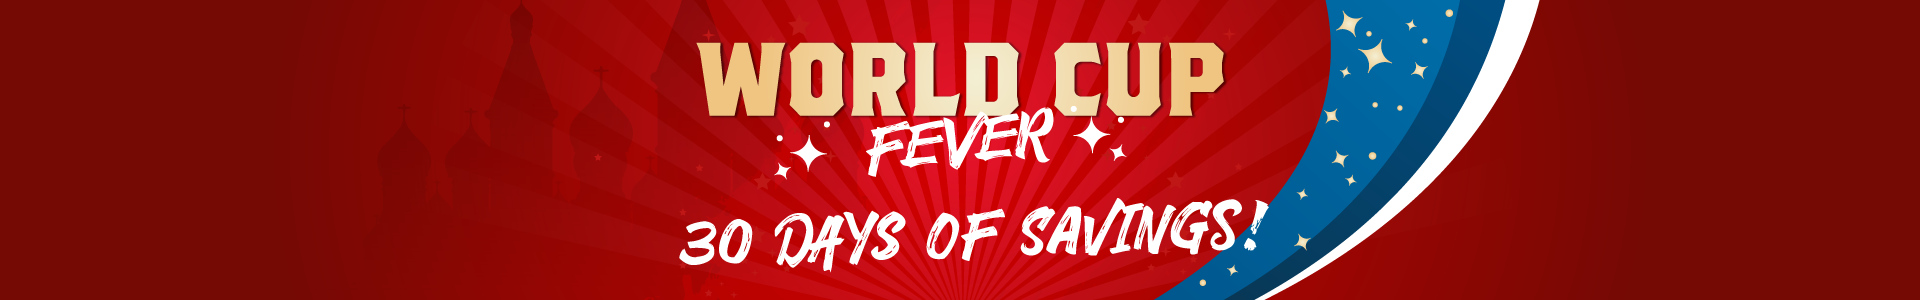 World Cup Fever Header